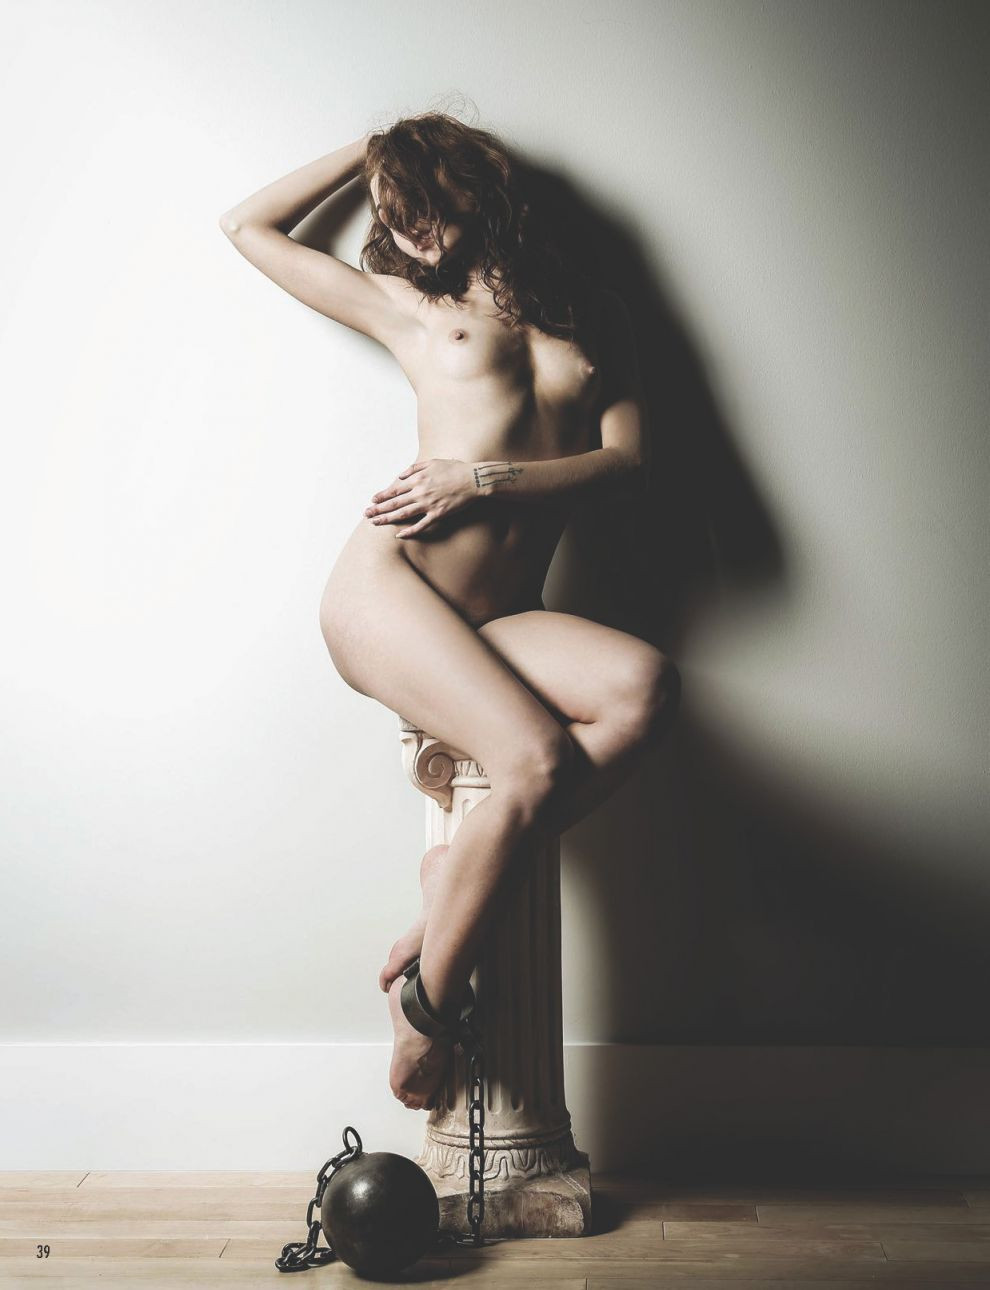 Zoe West Naked 5 TheFappening.nu